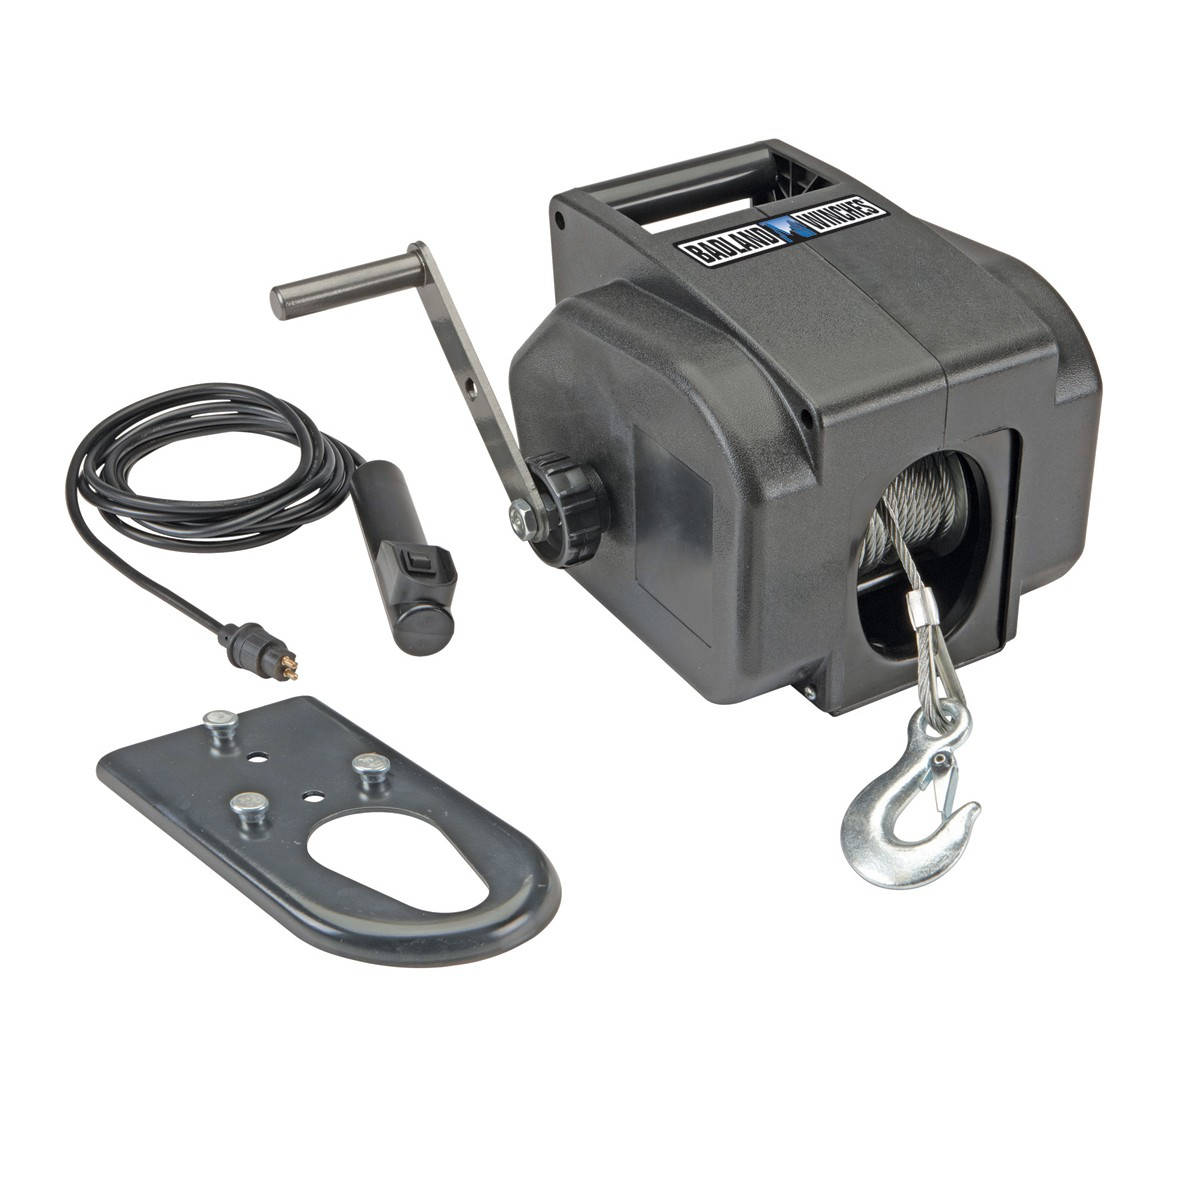 small resolution of badland marine electric winch 2000 lb towing cable 30 ft aircraft badlands 2000 lb winch wiring diagram badlands 2000 lb winch wiring